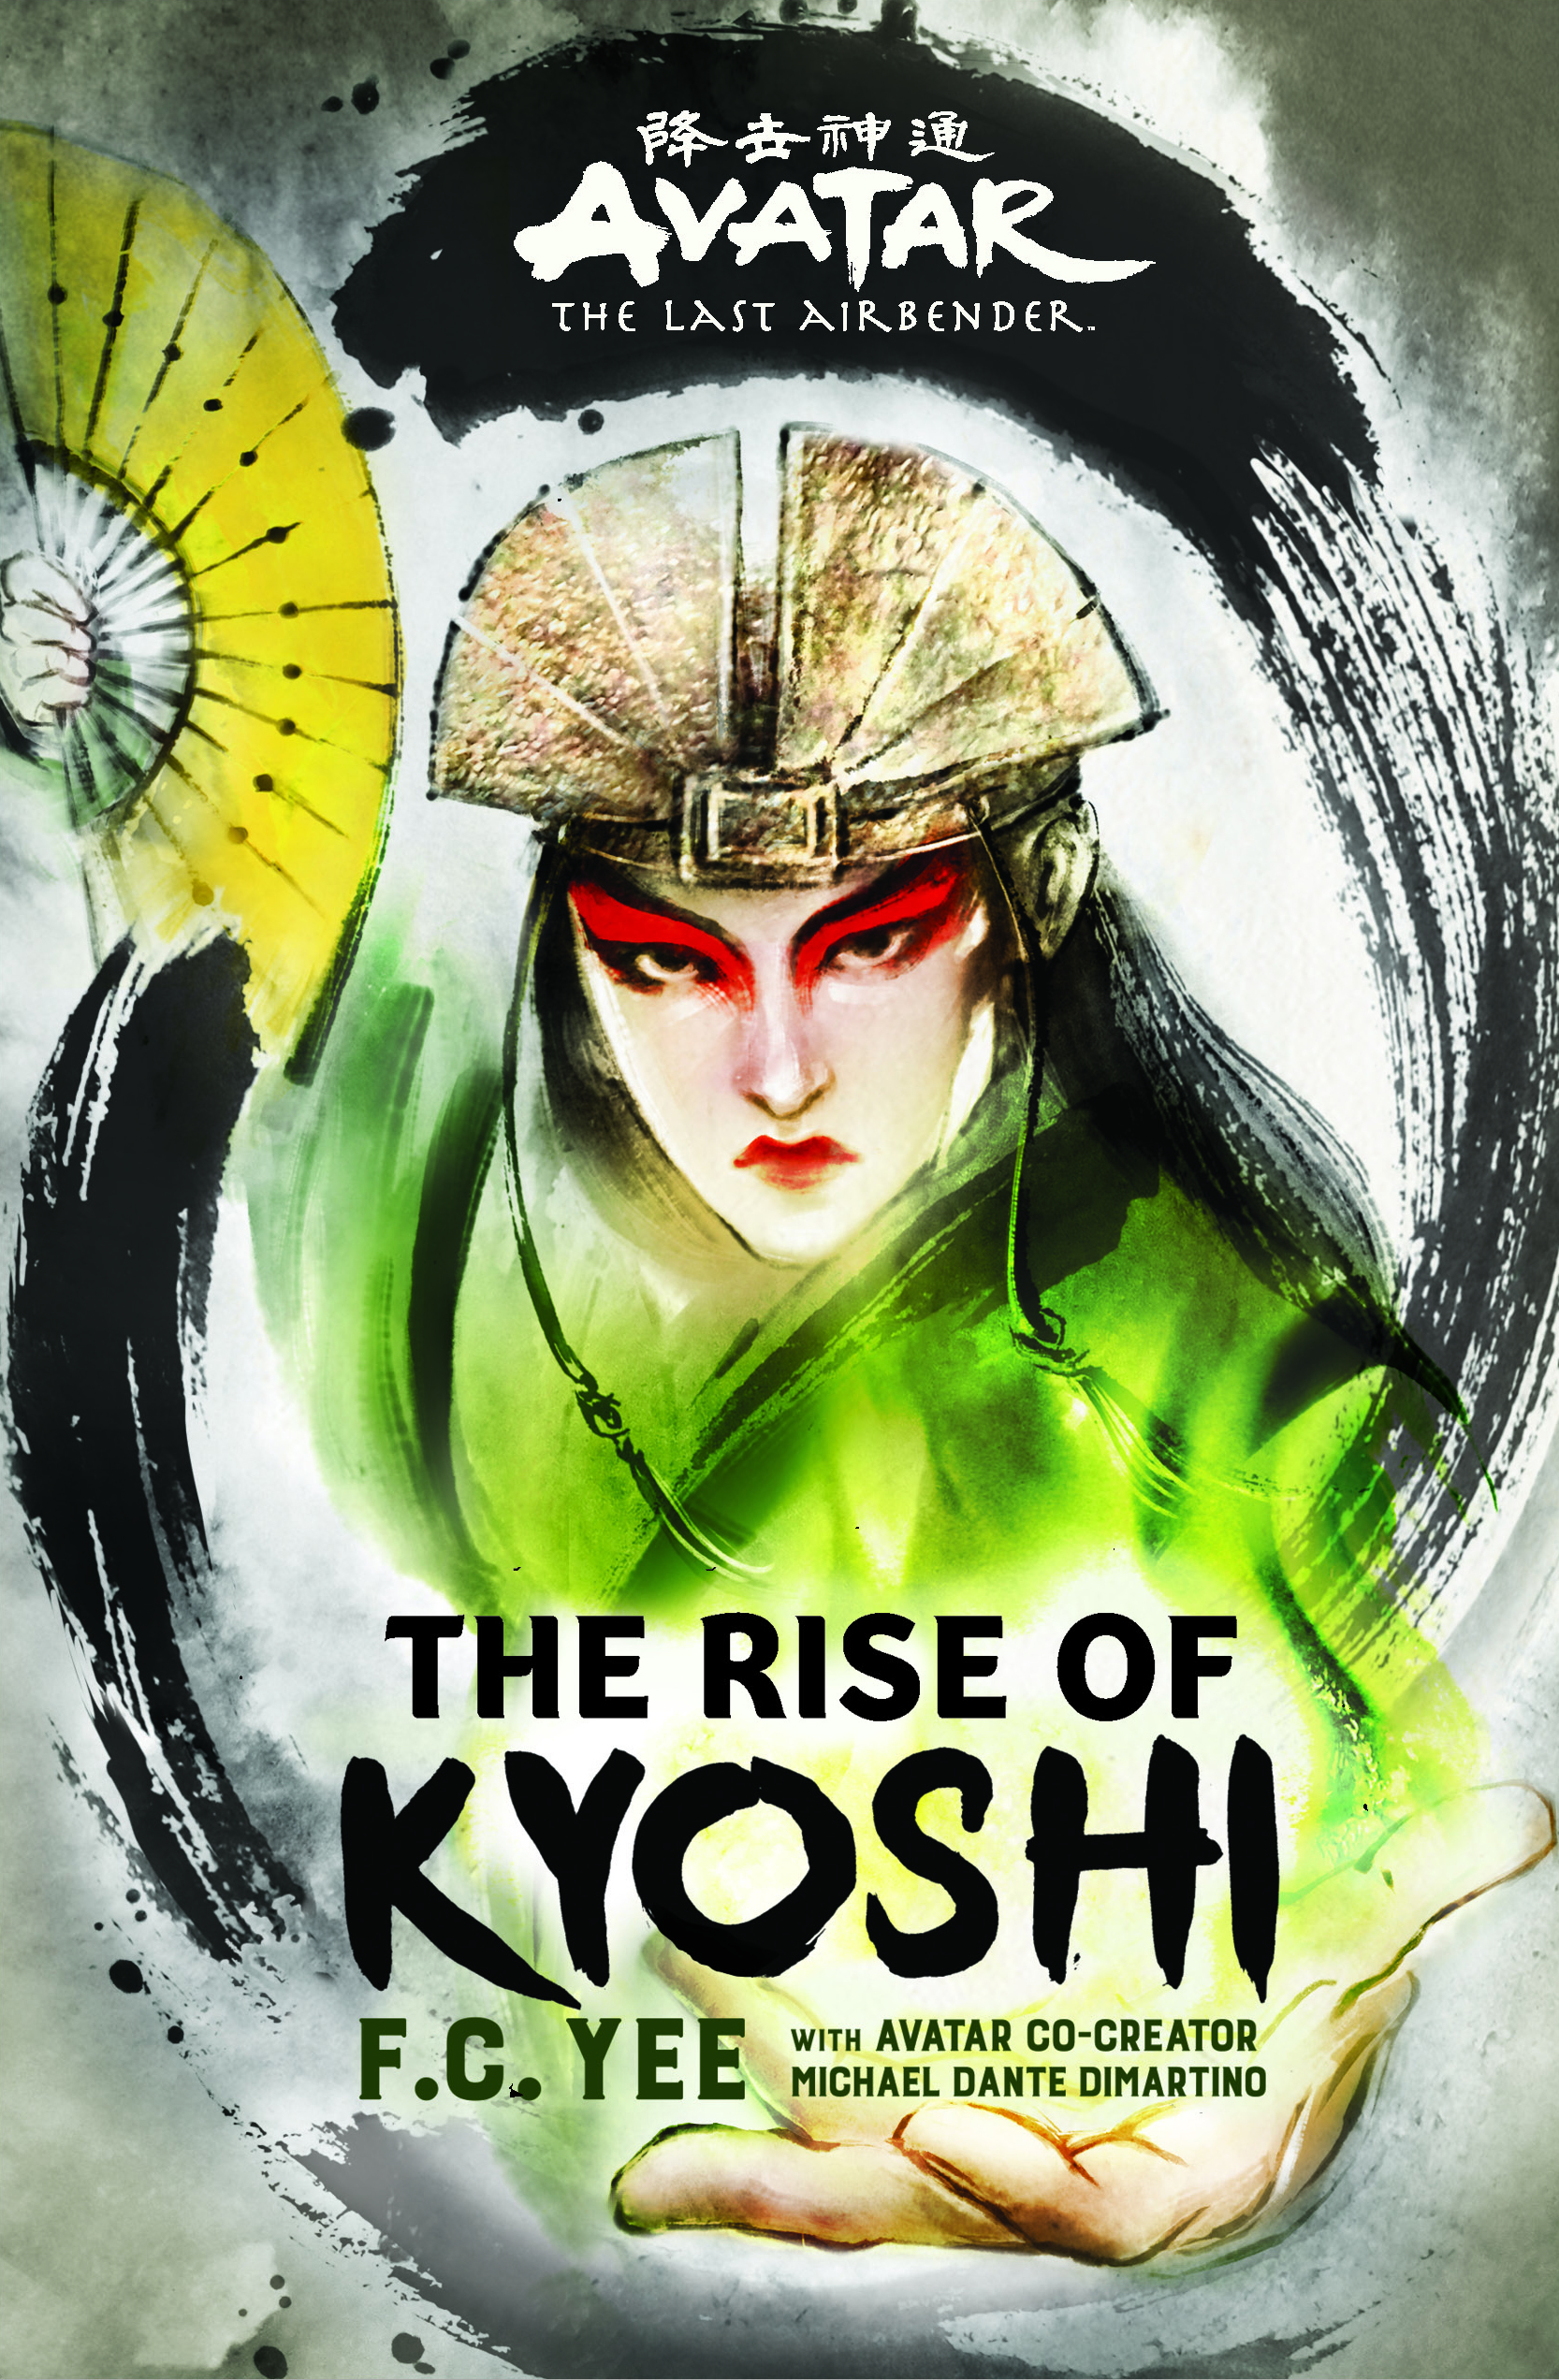 The Rise of Kyoshi author F.C. Yee on penning a new entry in the Avatar canon